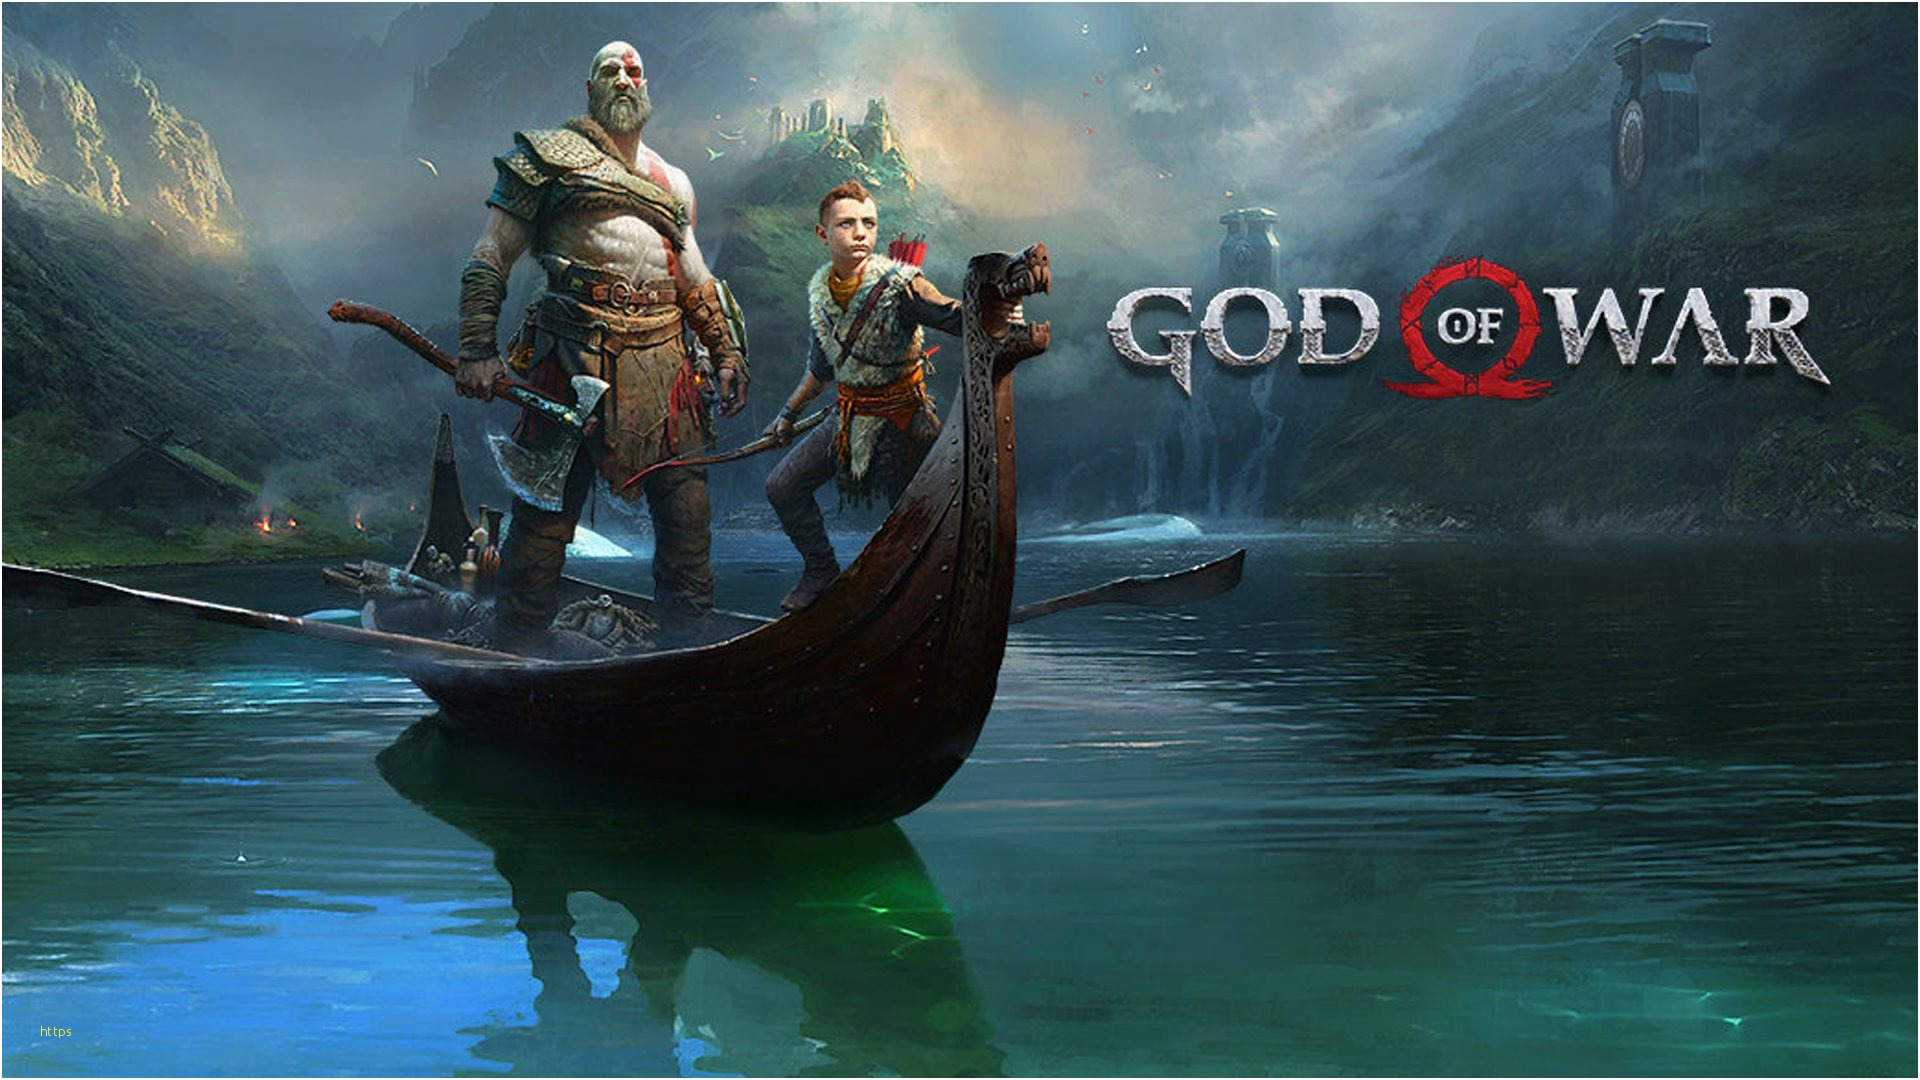 God Of War Hd Wallpaper Posted By Ethan Mercado